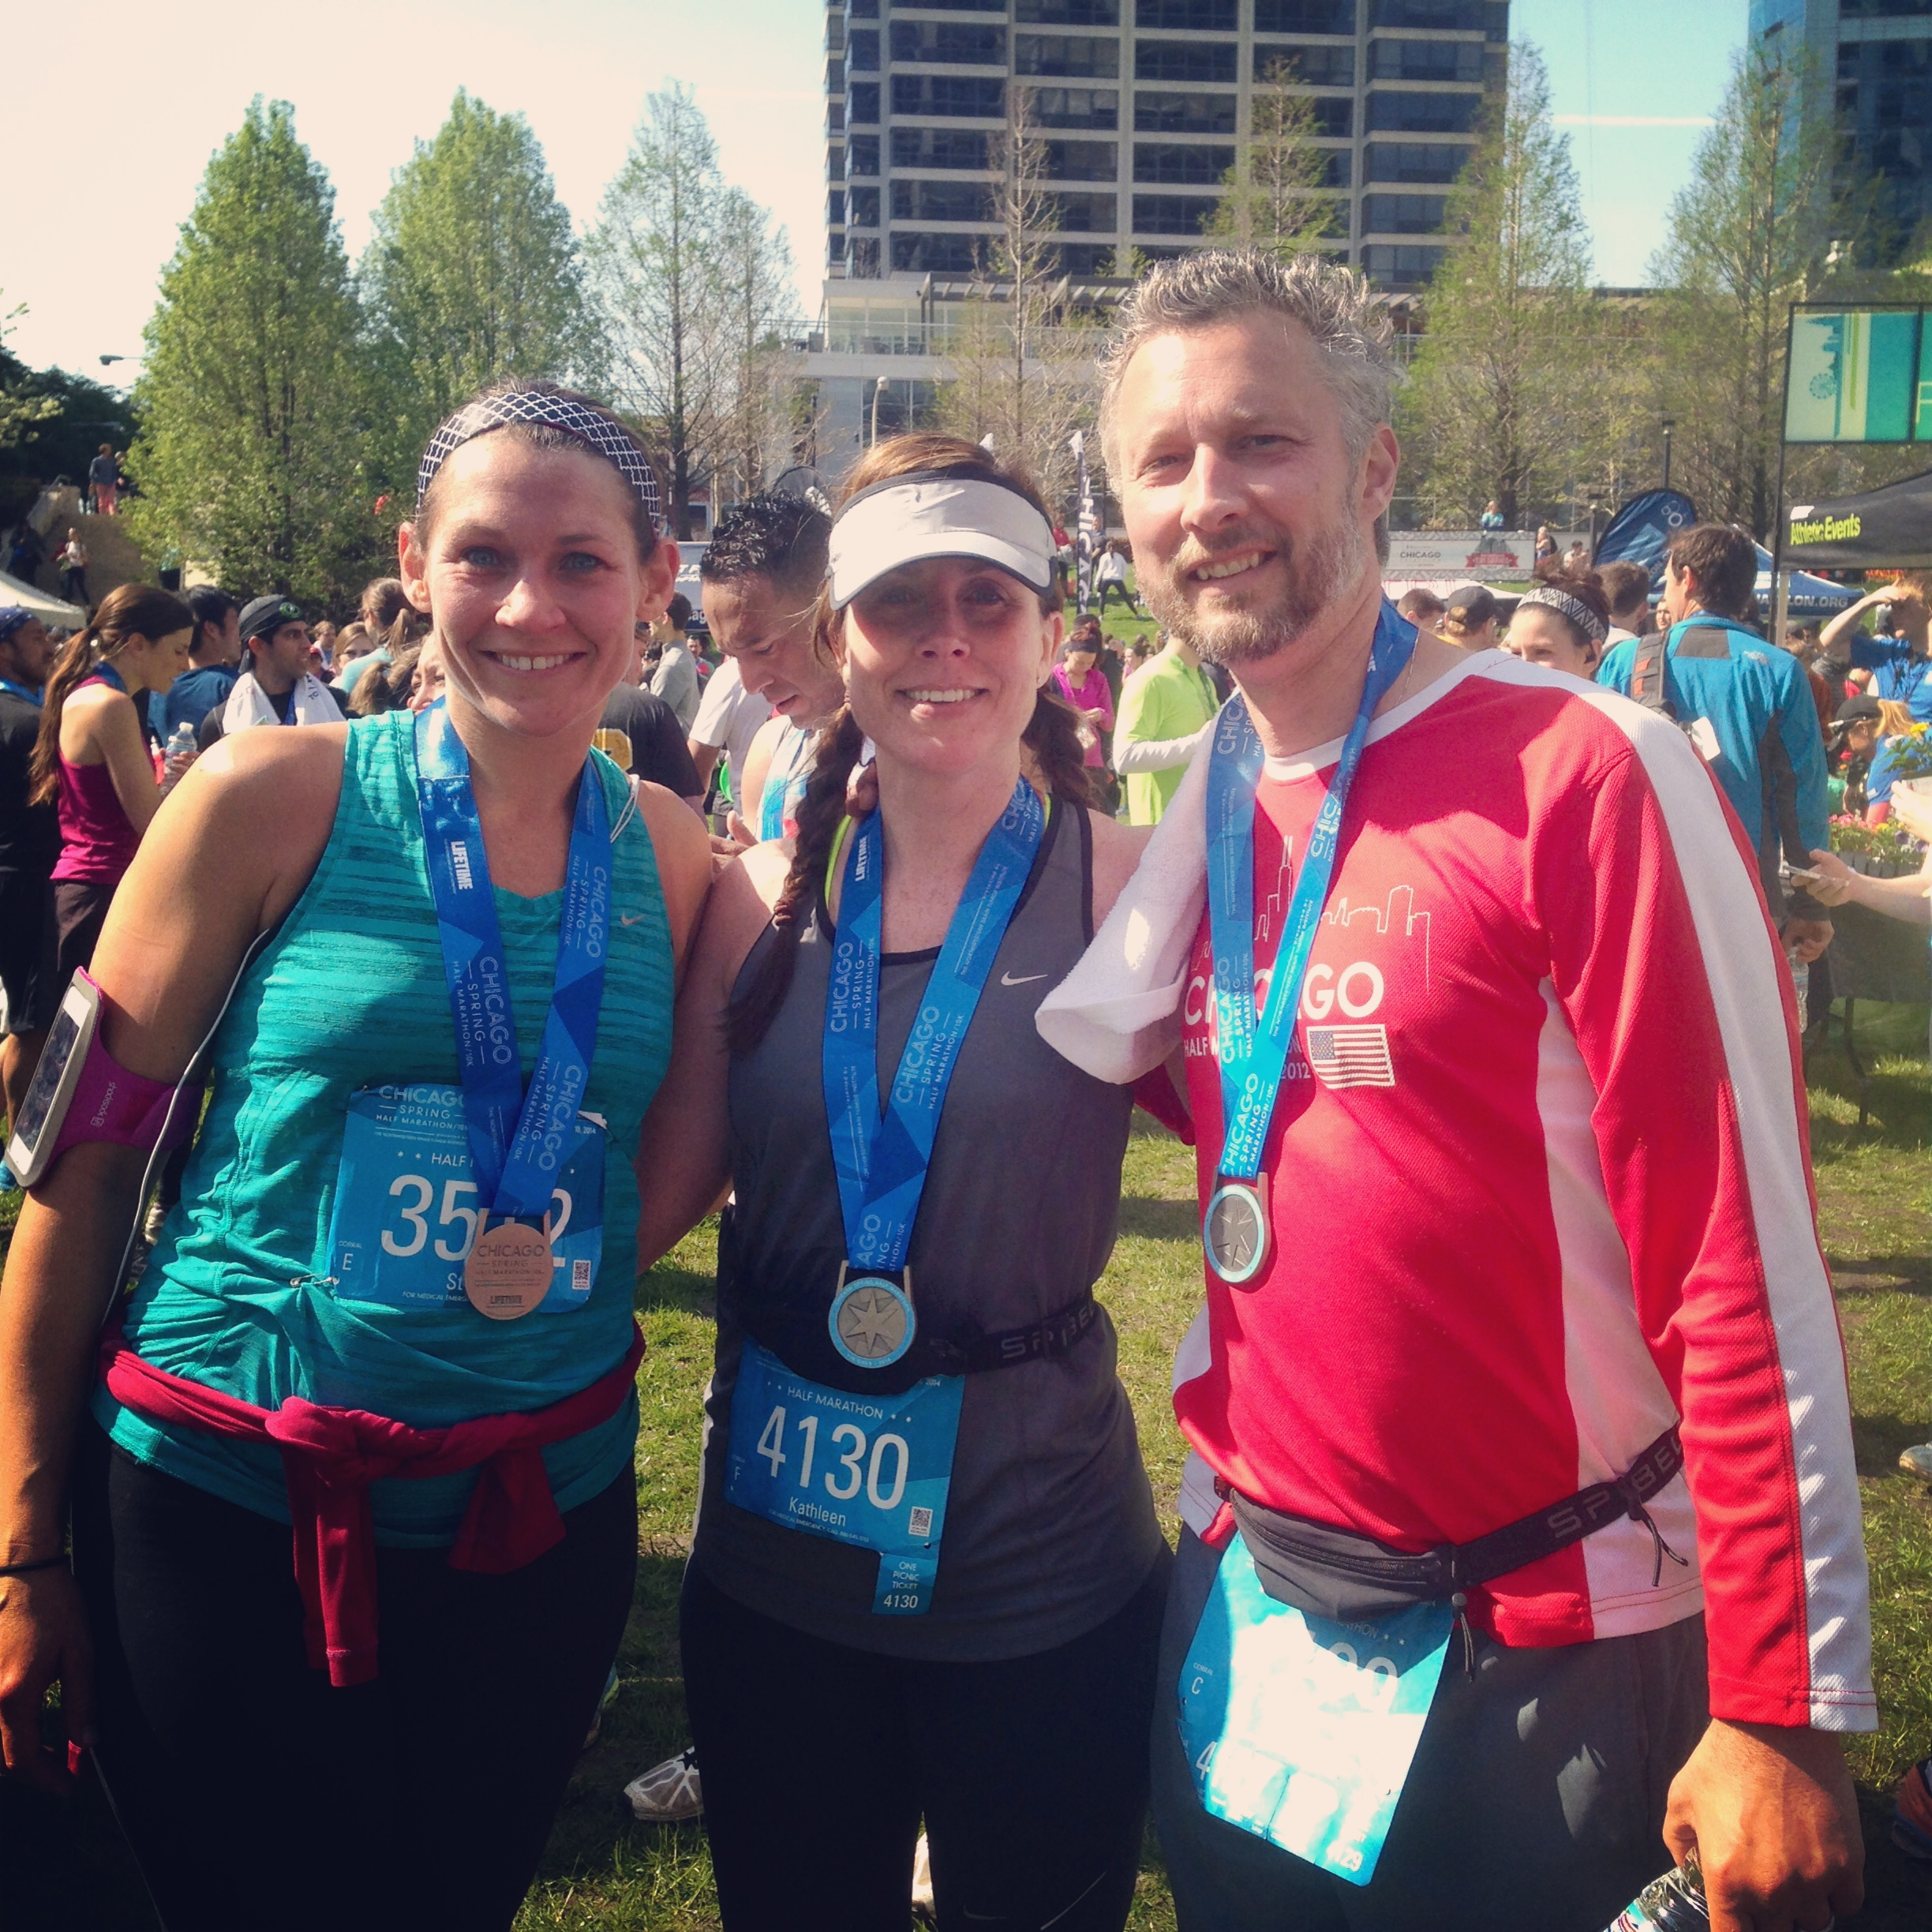 My awesome friend Stacie, me and my husband: PRs for each of us. What an amazing race!